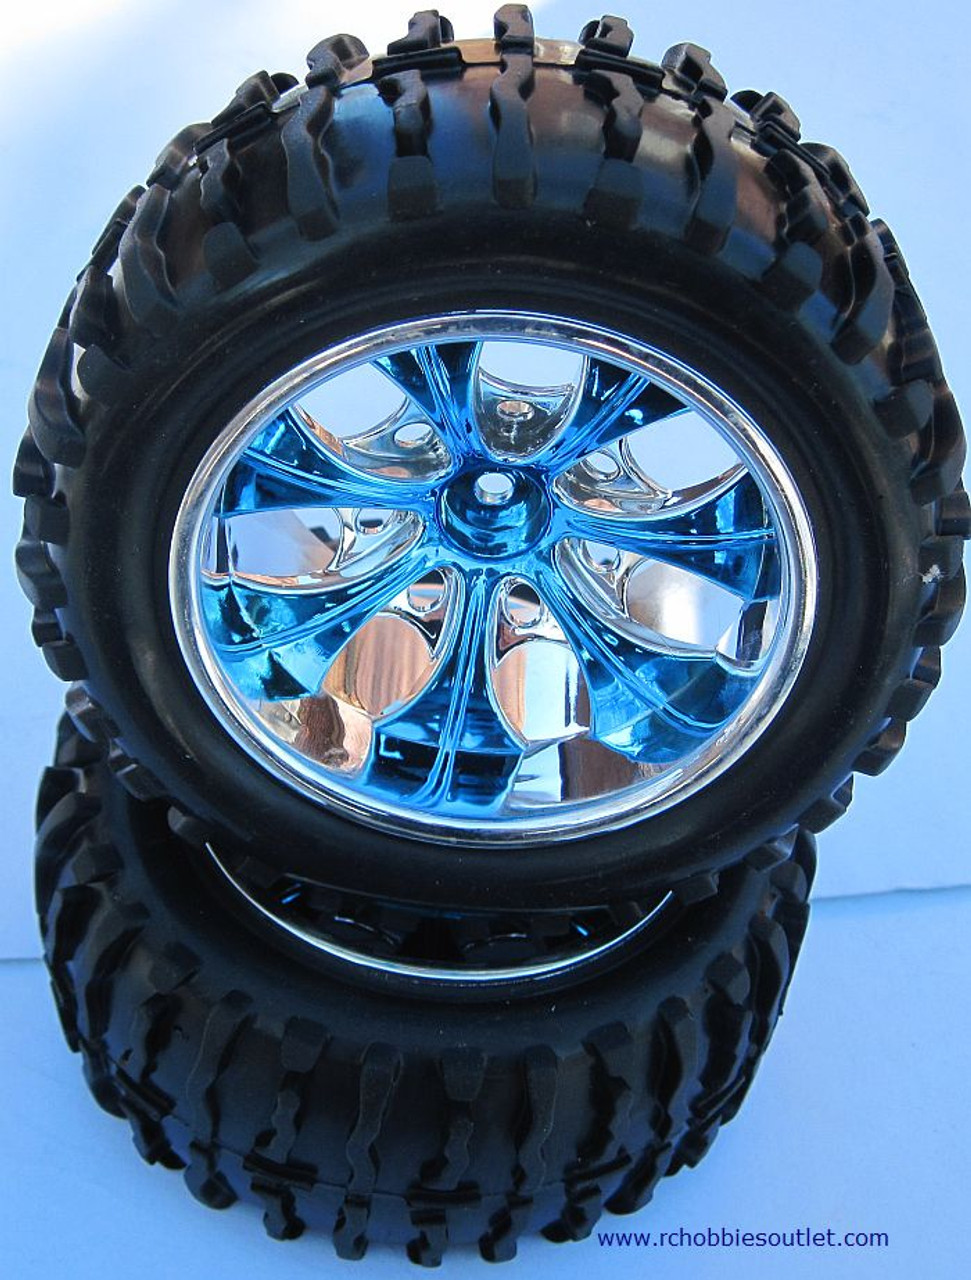 08010 N2  1/10 MONSTER TRUCK BLUE FACTORY TEAM WHEEL  (2 PC) HSP, Redcat